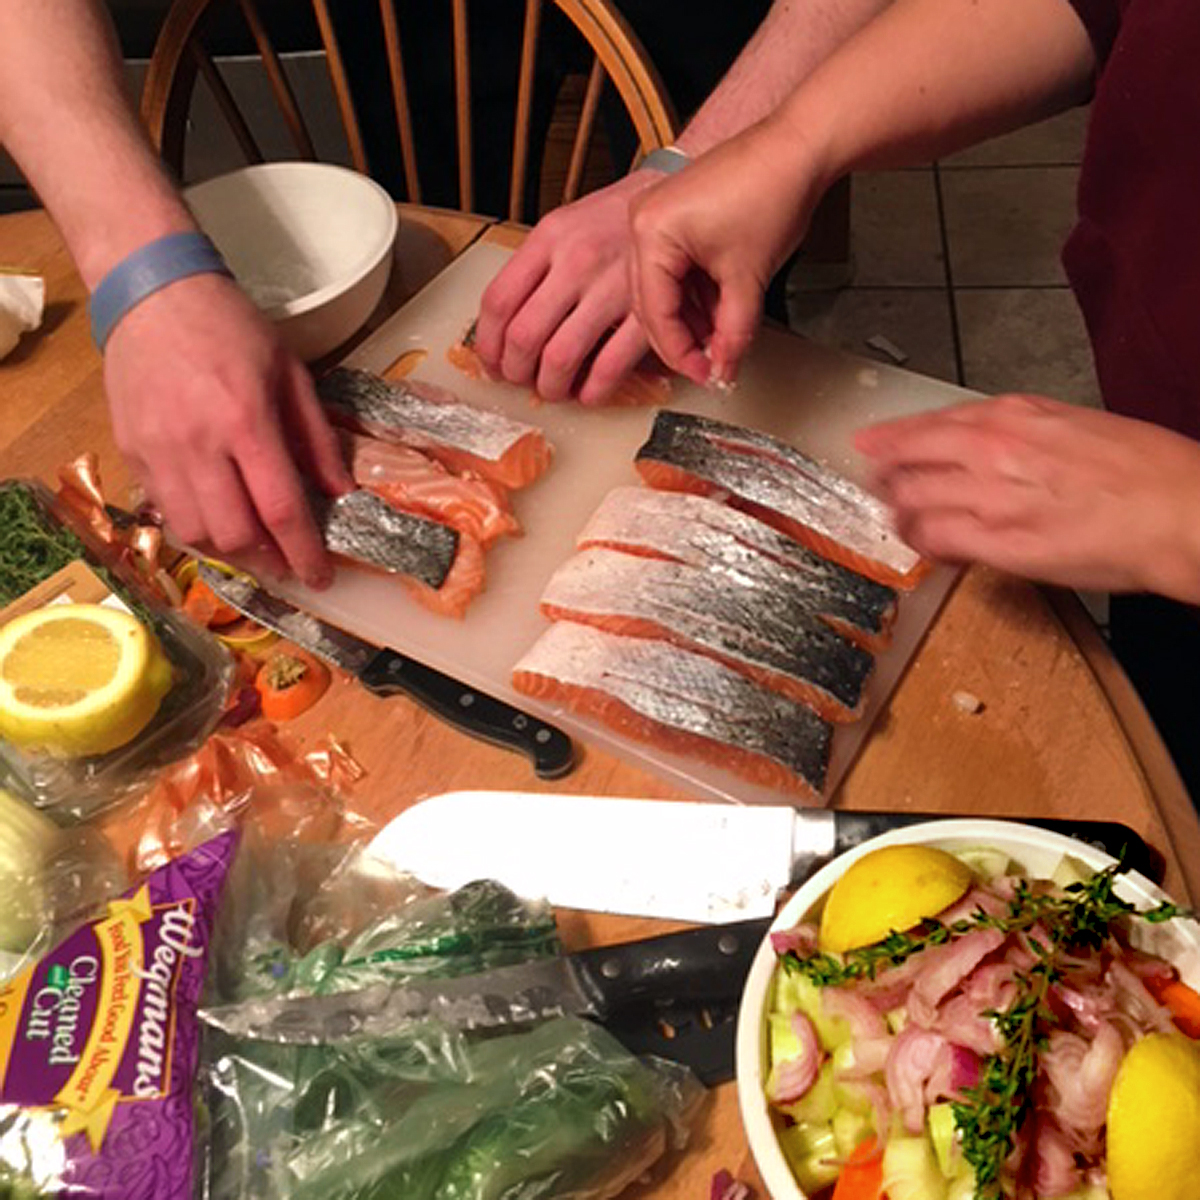 Scoring and Salting the Salmon from Gordon Ramsay Masterclass